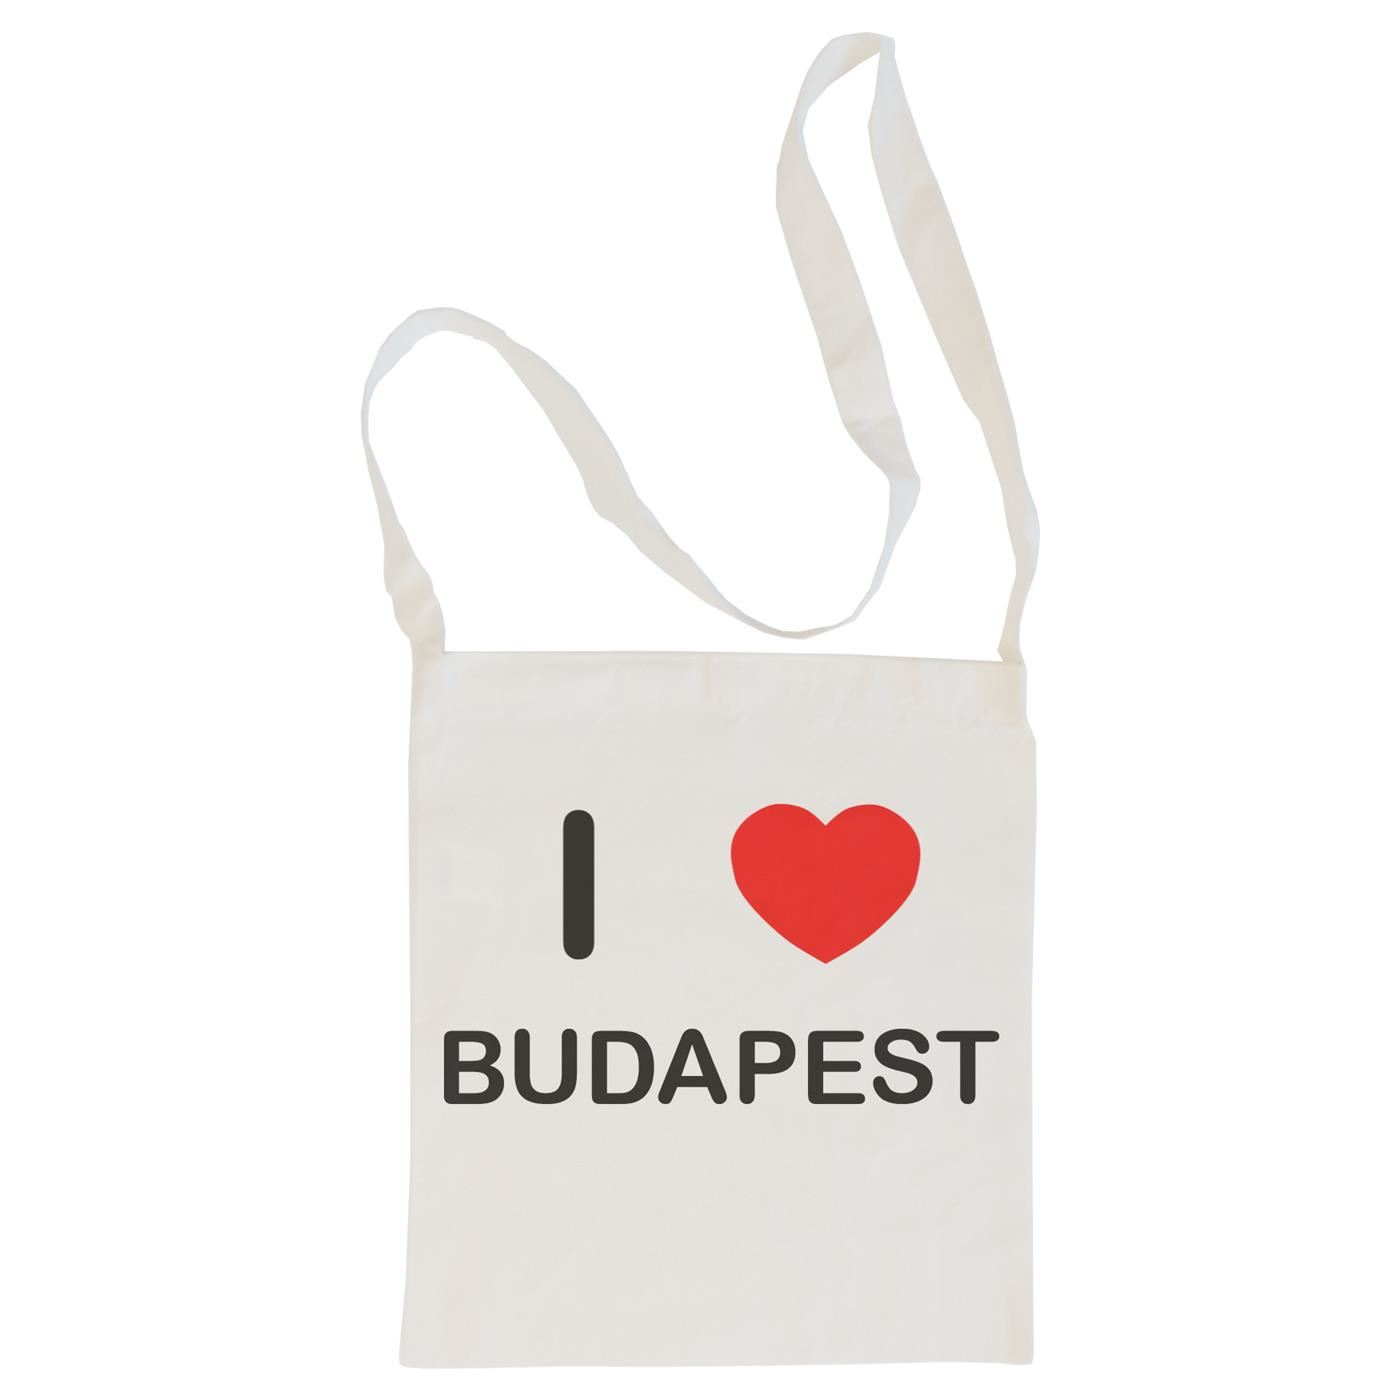 I Love Budapest - Cotton Bag | Size choice Tote, Shopper or Sling